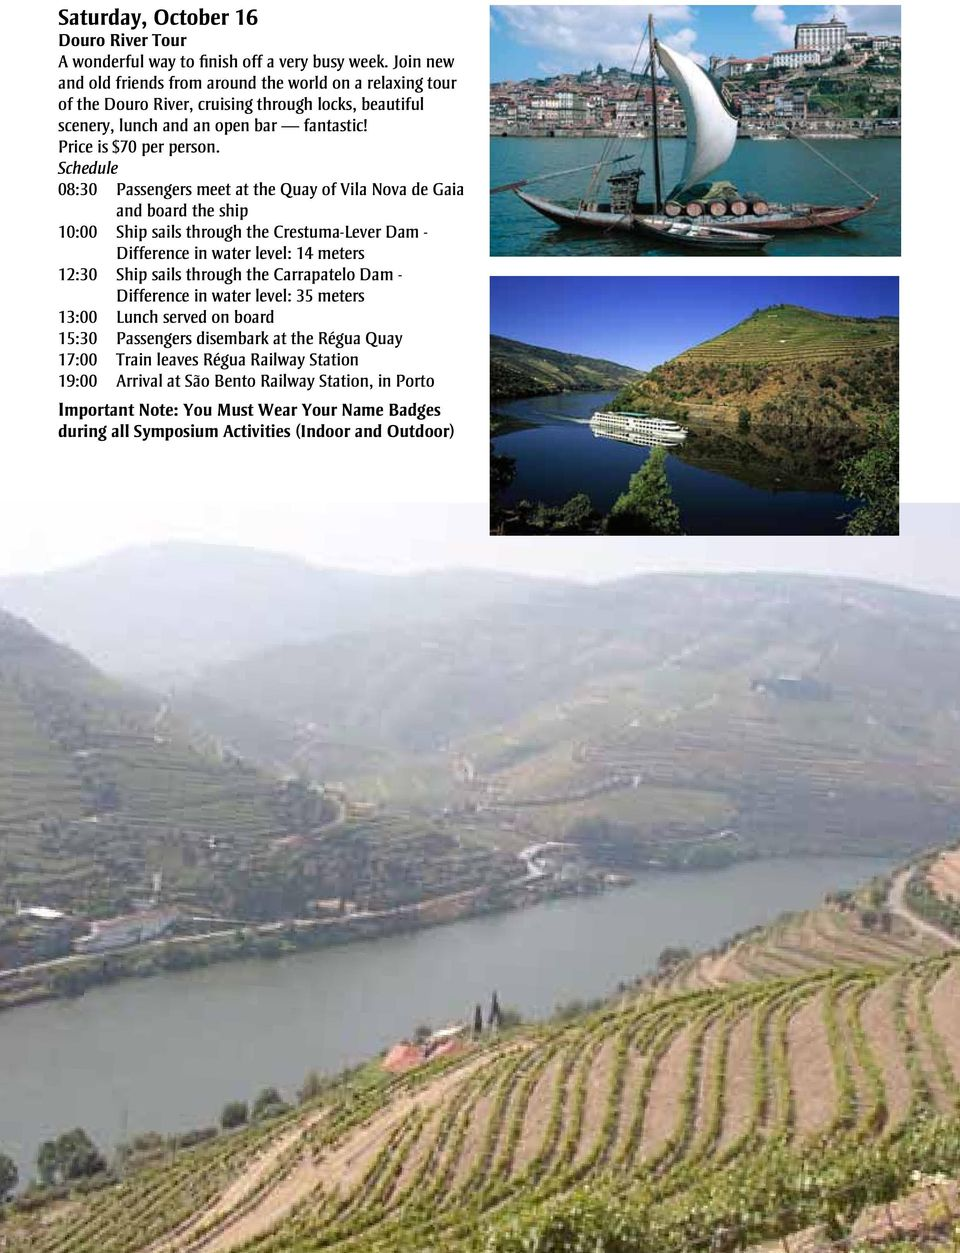 Schedule 08:30 Passengers meet at the Quay of Vila Nova de Gaia and board the ship 10:00 Ship sails through the Crestuma-Lever Dam - Difference in water level: 14 meters 12:30 Ship sails through the